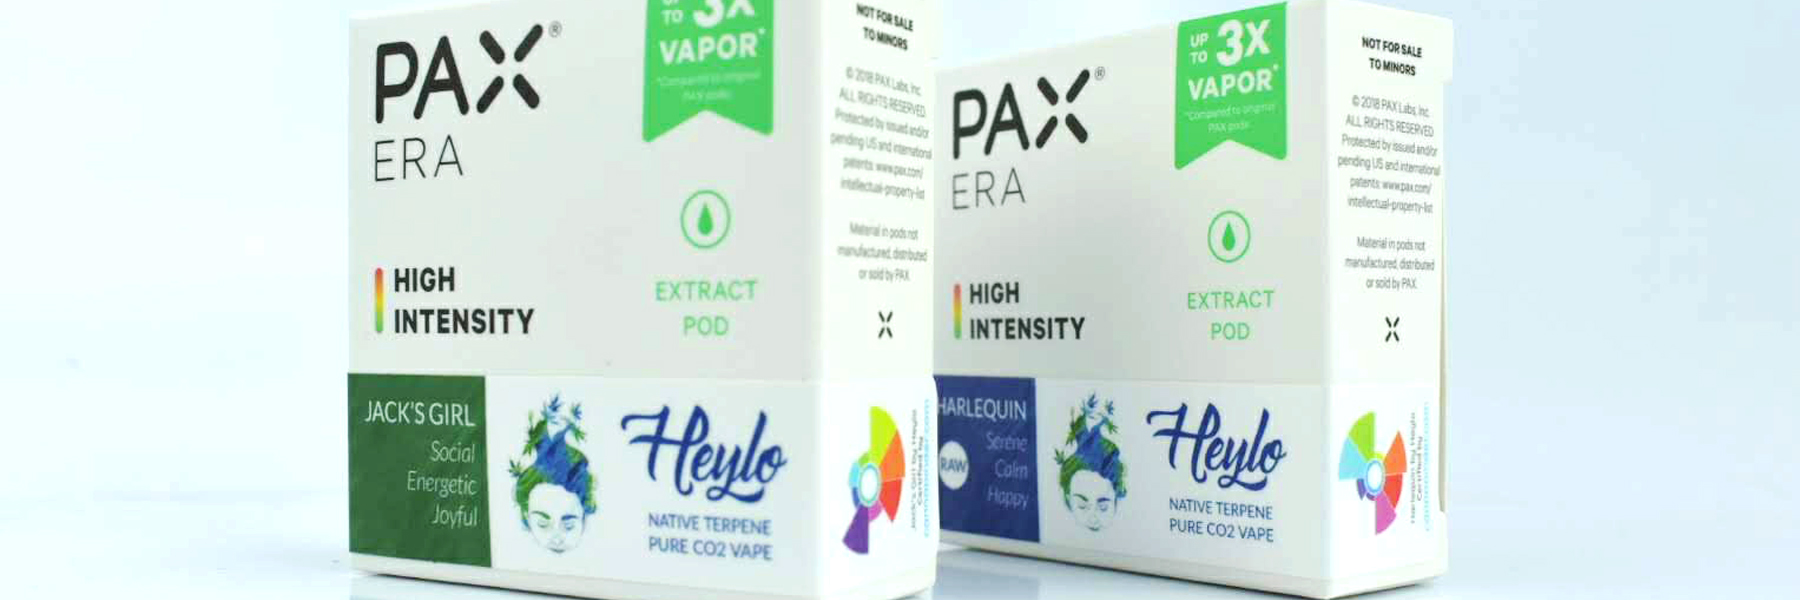 cannastamp terpene visual with pax era